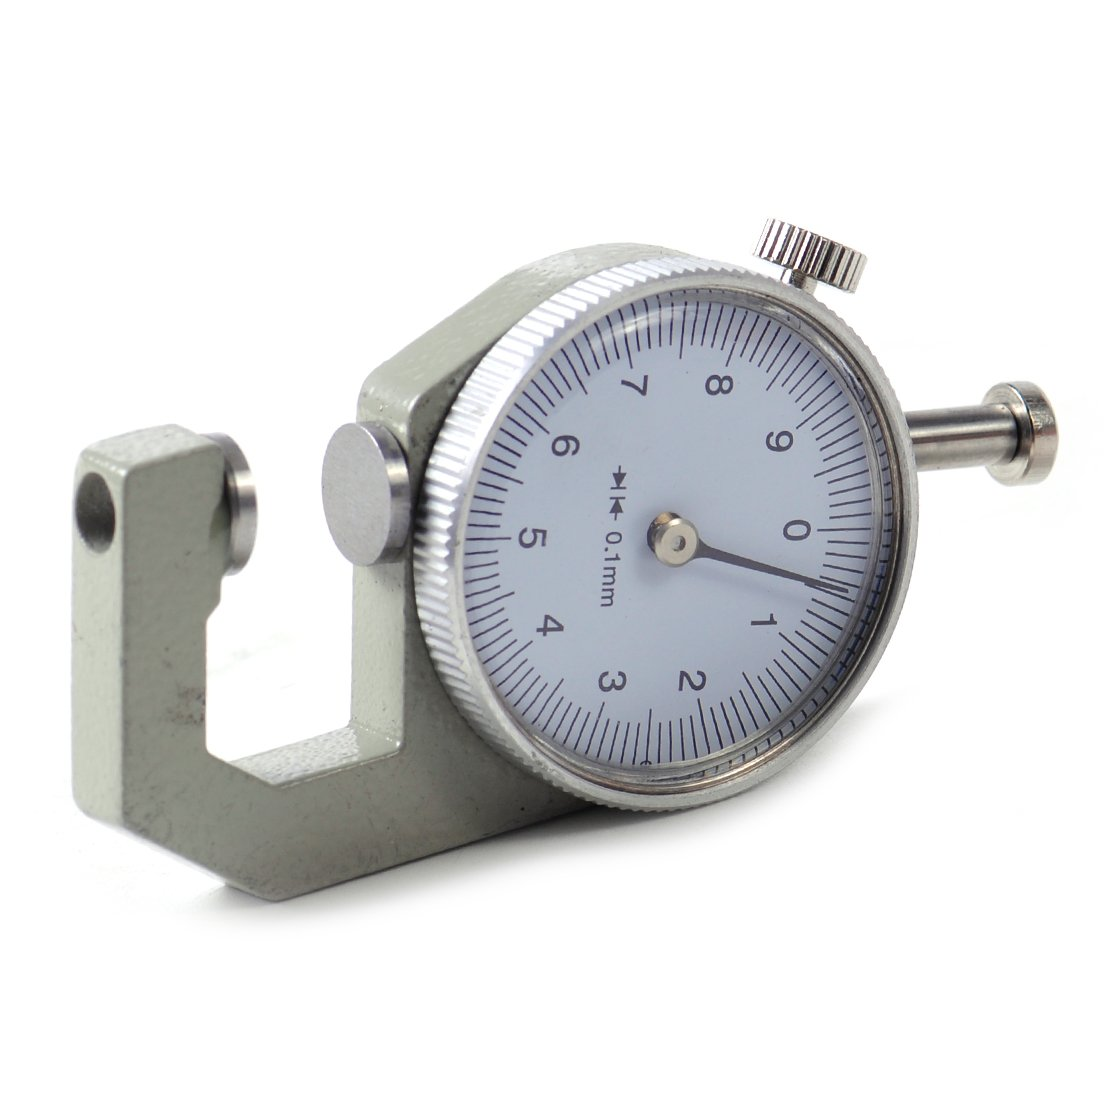 0-10mm Thickness Round Dial Gauge Gage Tester Measure Tool Leather Craft Pocket eastar